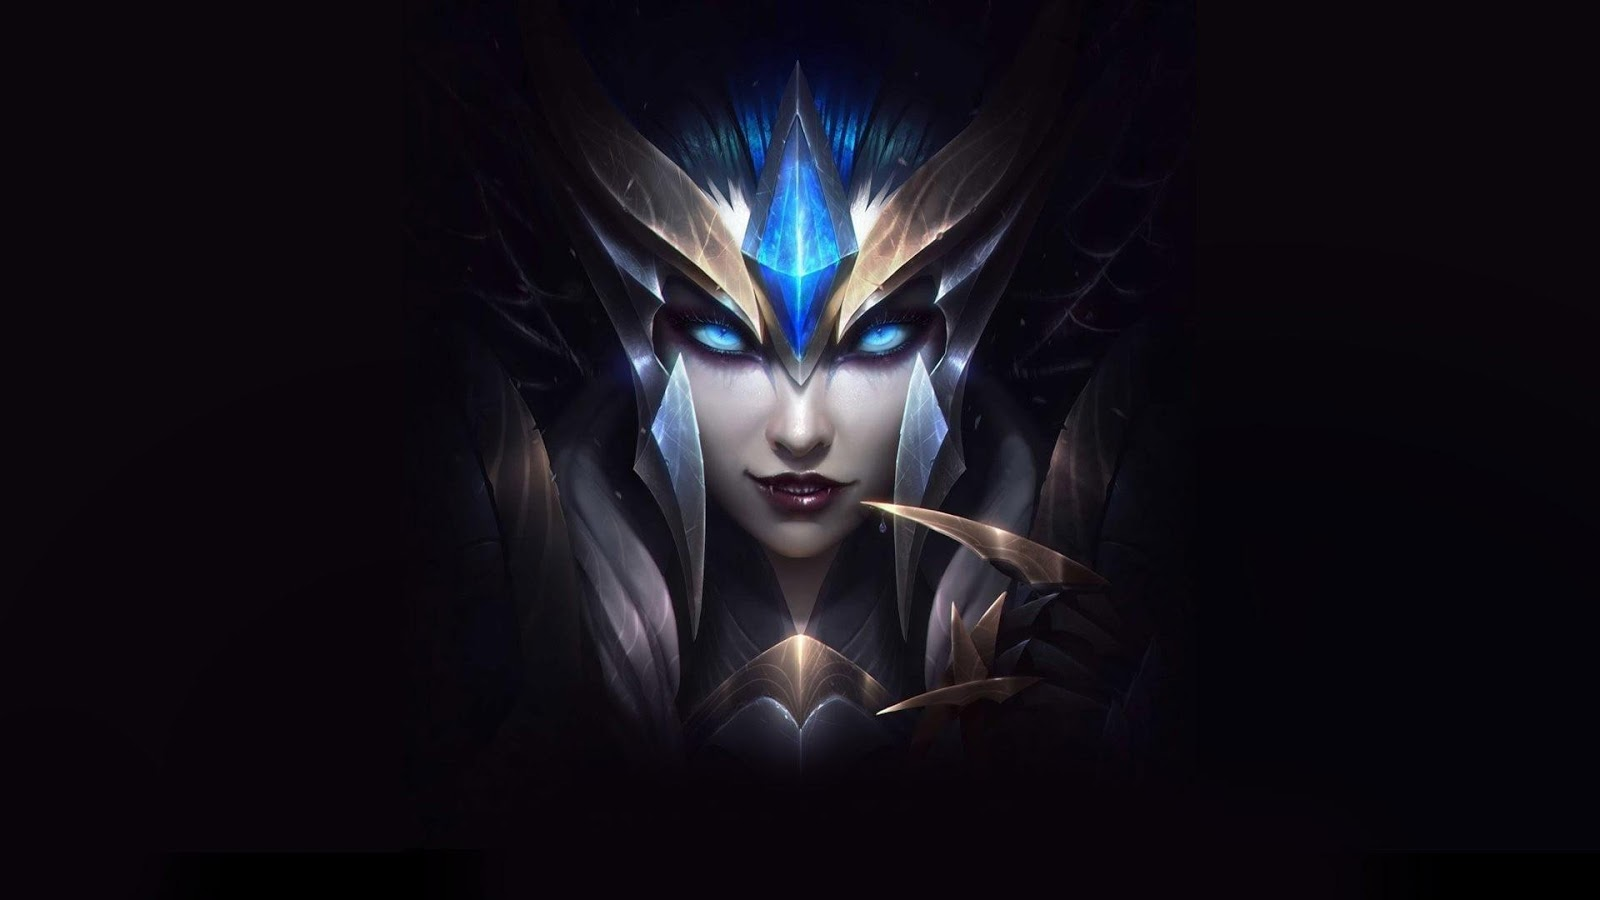 Wallpaper Irithel Silver Cyclone Skin Mobile Legends HD for PC - Hobigame.net